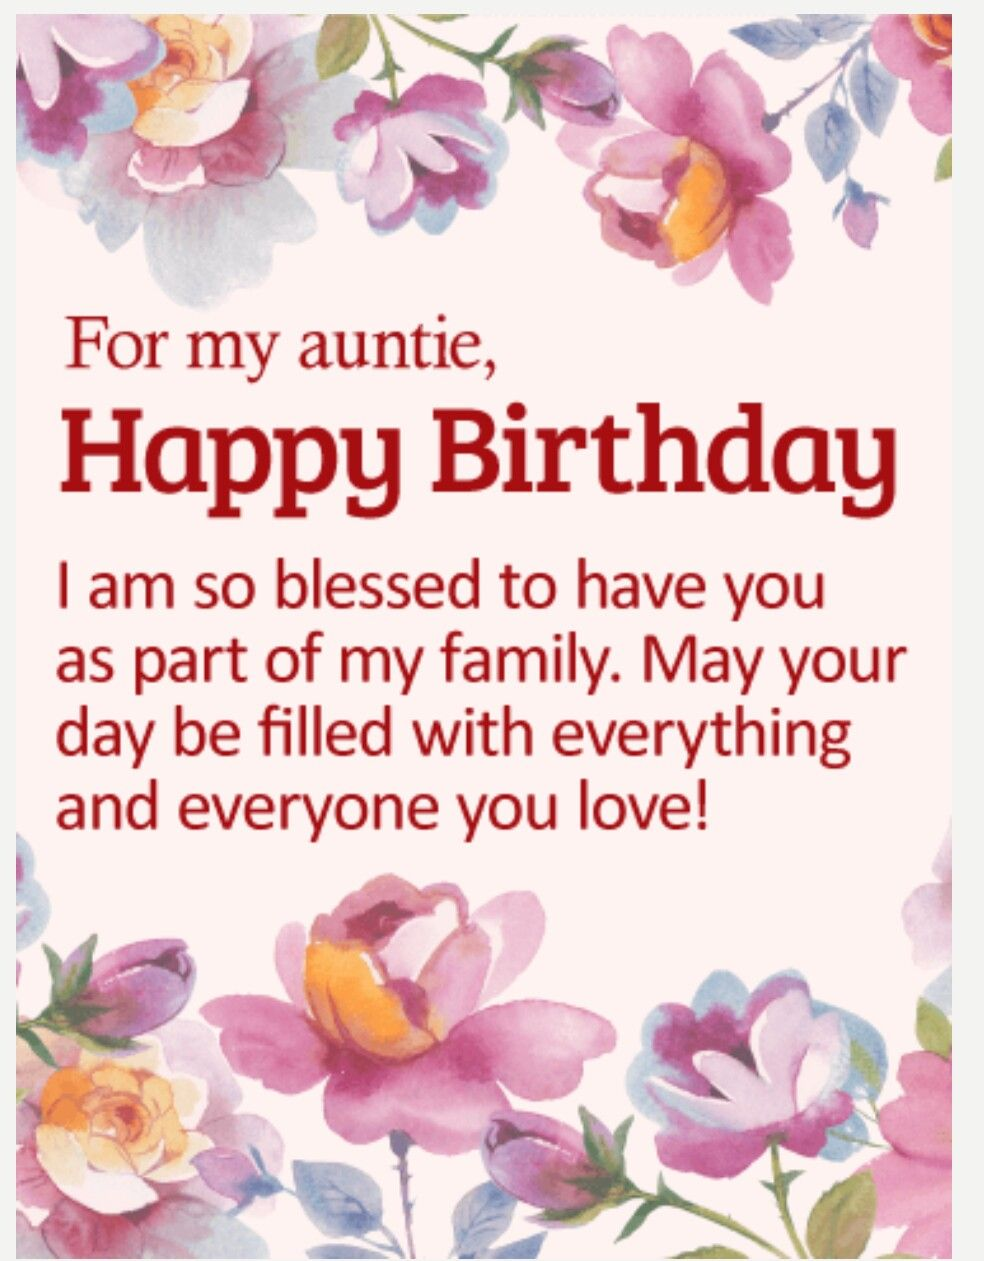 Pin By Natalie Chetty On Aunts Birthday Pinterest Birthday